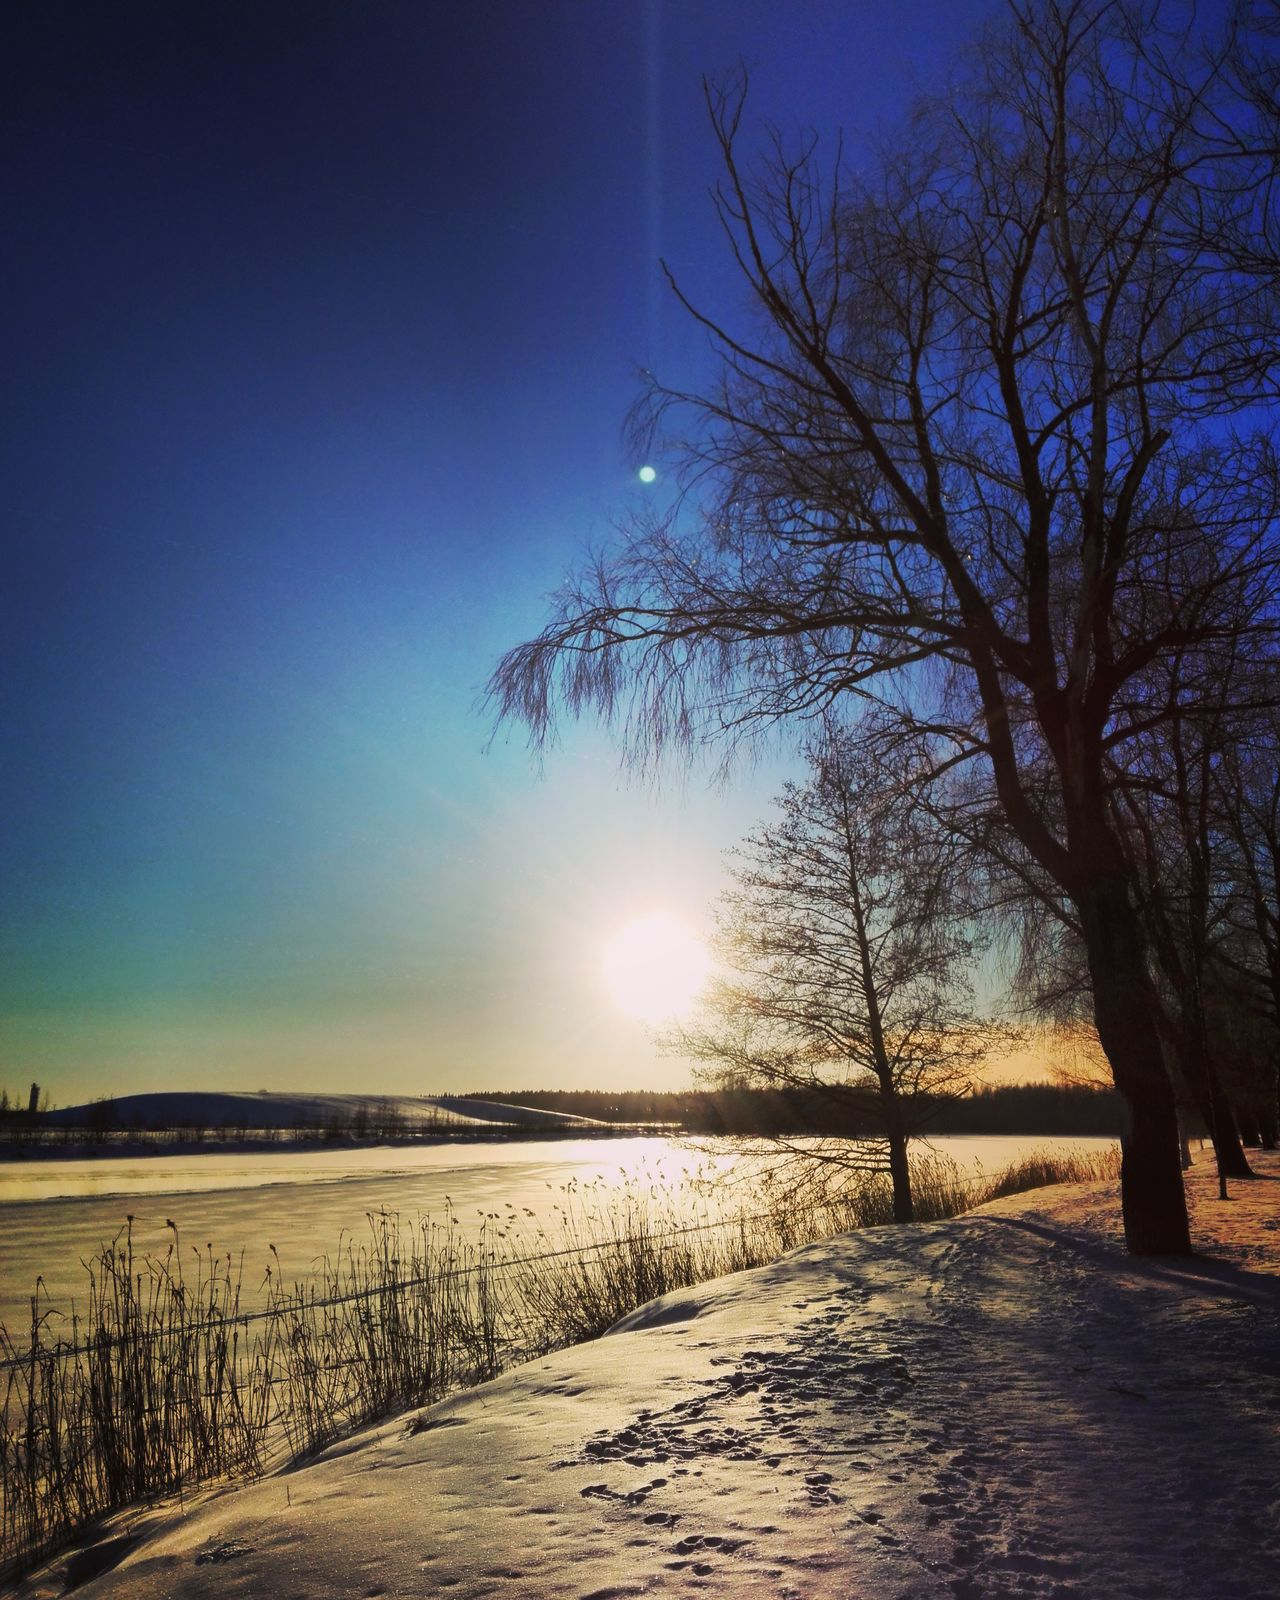 Sunnyday Tree Sky Nature Sunset Beauty In Nature Landscape Snow ❄ Daytime Wintertime Landscape_photography Photography Finnish Nature Nature Photography Photographer Outdoors Naturelovers Cold Temperature Winterwonderland Colorful Winter Landscape Lake View Naturebeauty